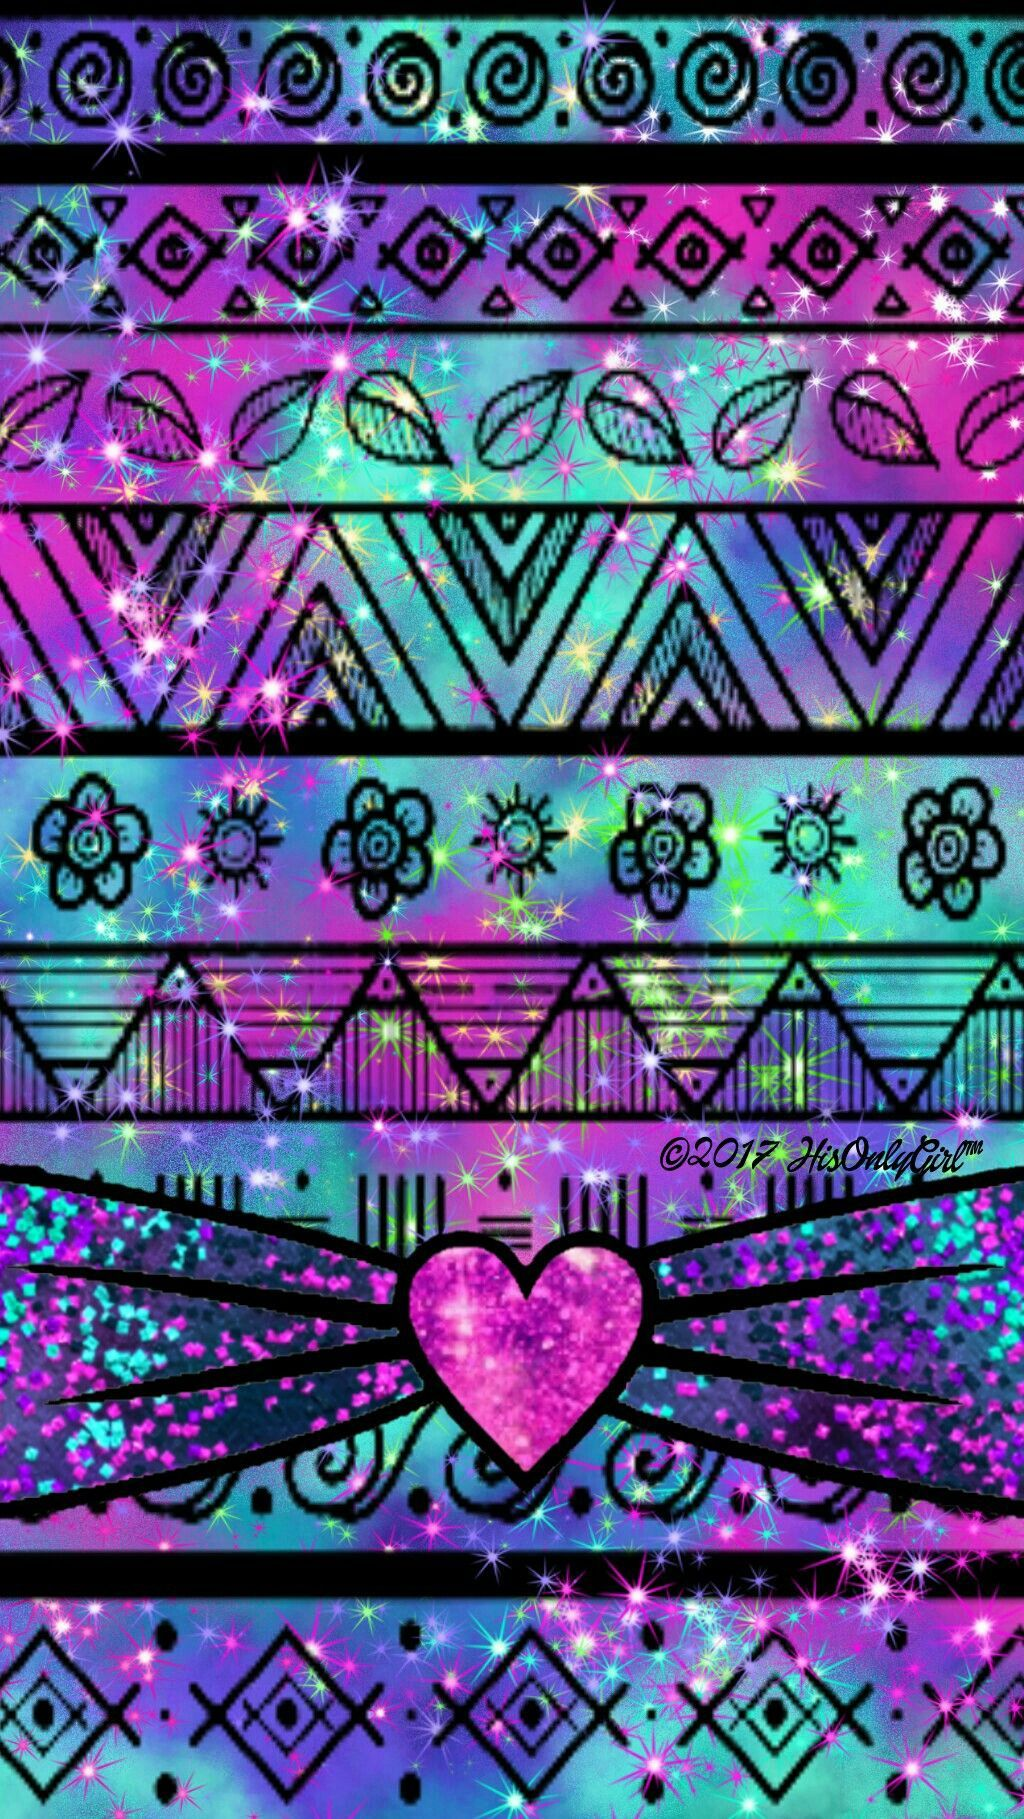 1024x1819 Girly tribal galaxy wallpaper I created for the app CocoPPa ...